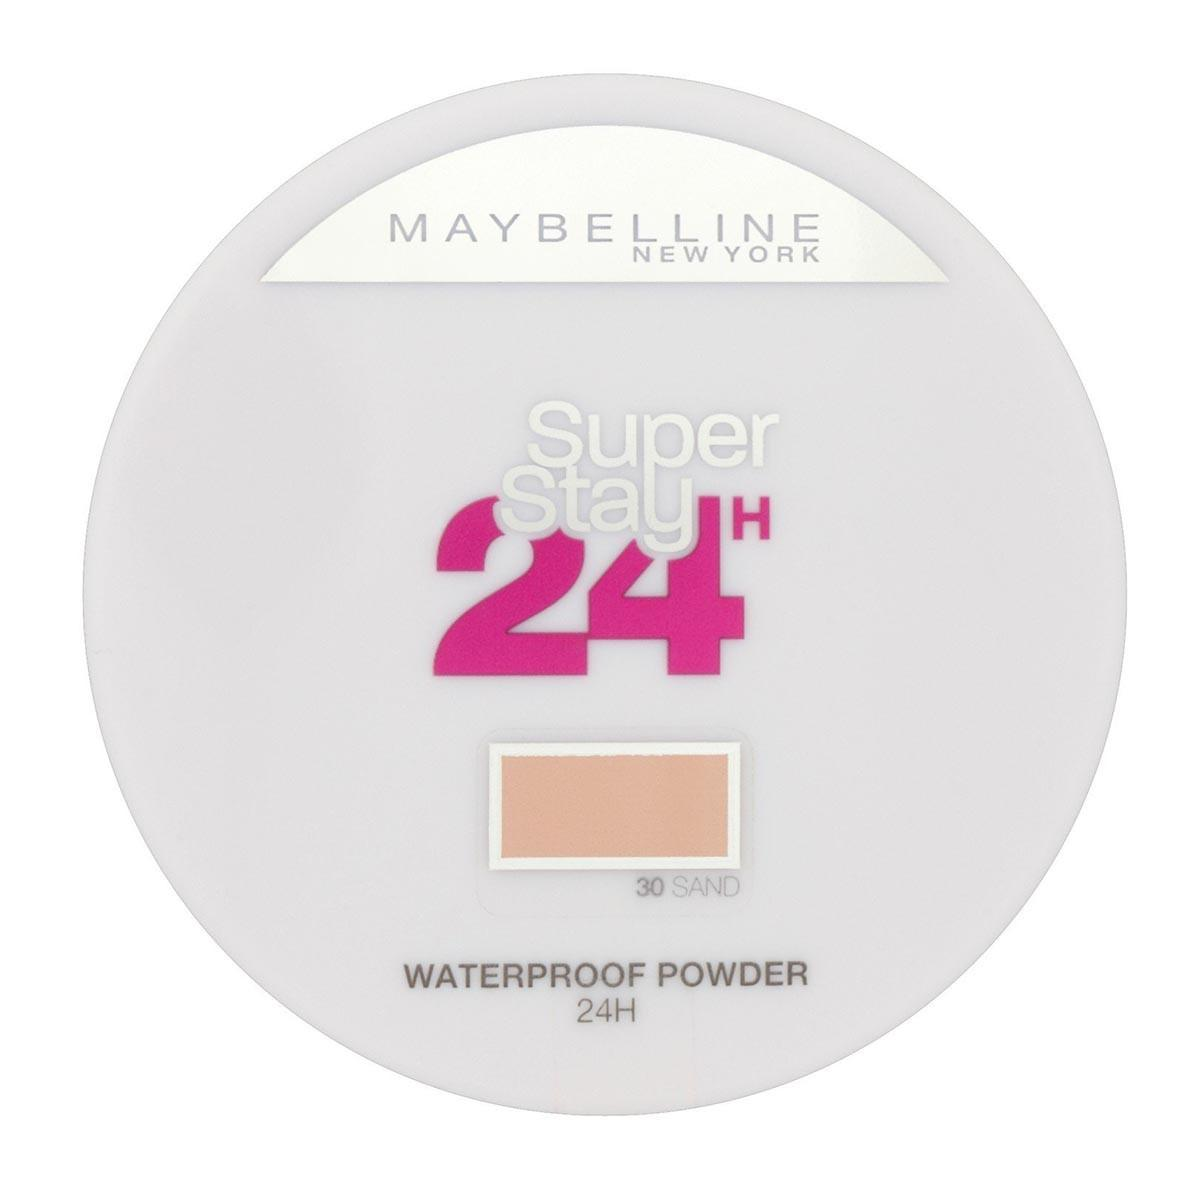 Maybelline fragrances Super Stay 24H Waterproof Powder 30 Sand